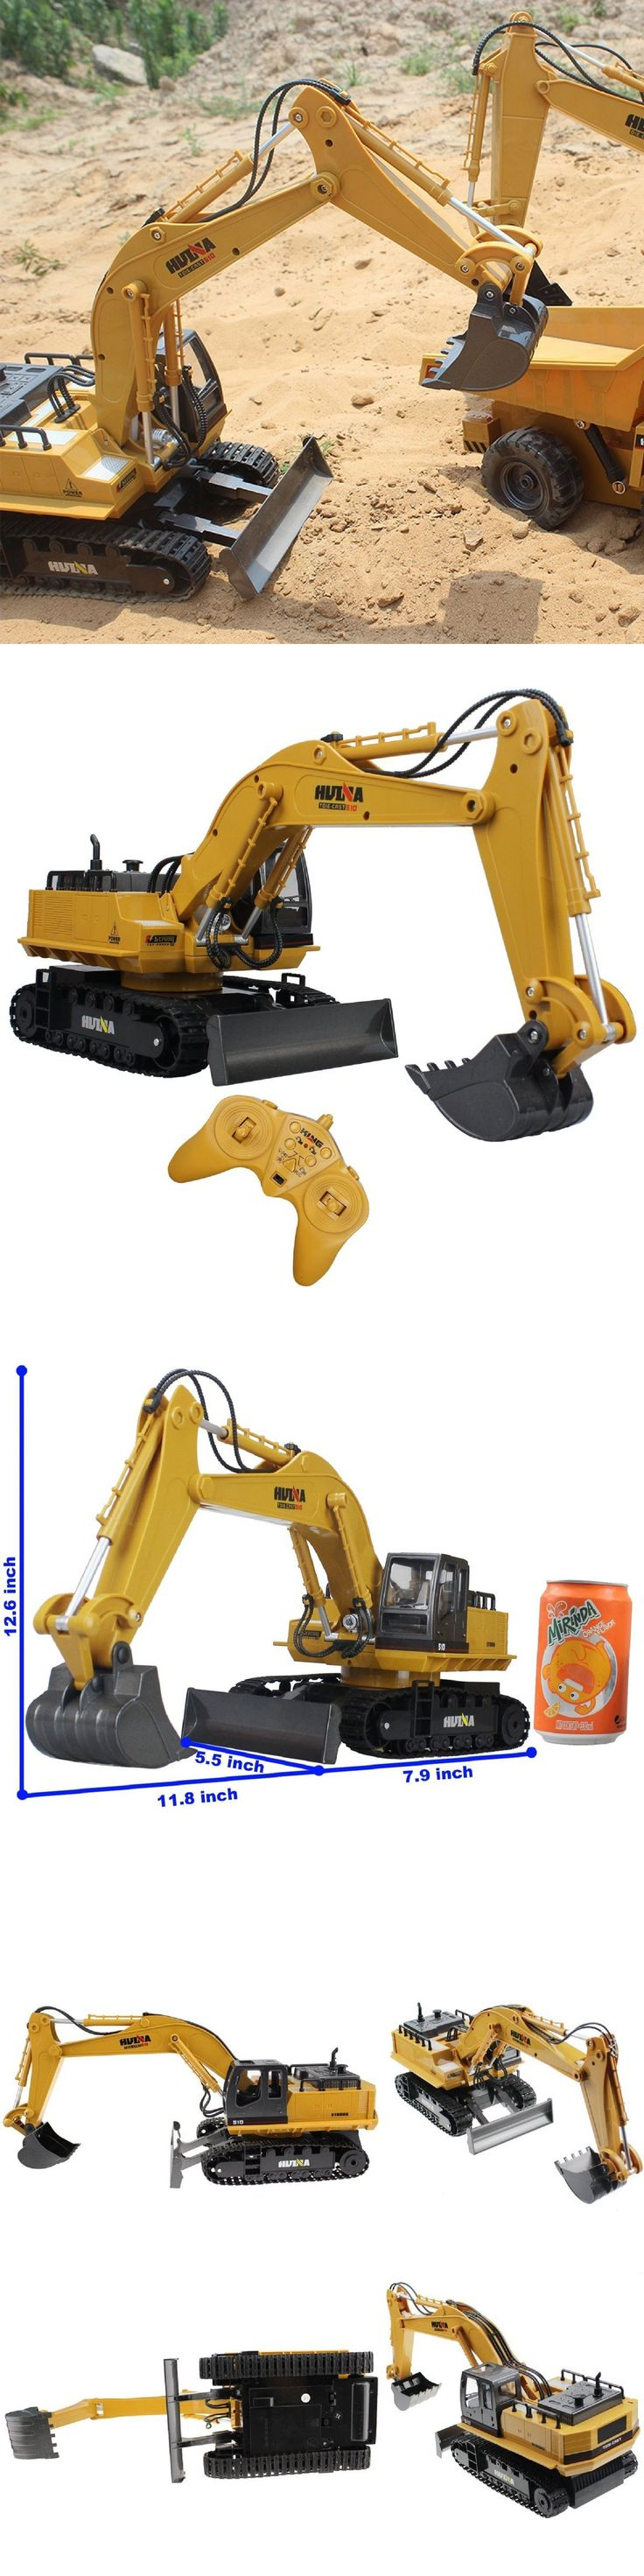 Cars Trucks and Motorcycles 182183: Remote Control Excavator Rc Tractor Bulldozer Crawler Truck Toy Metal Digger Car -> BUY IT NOW ONLY: $78.88 on eBay!